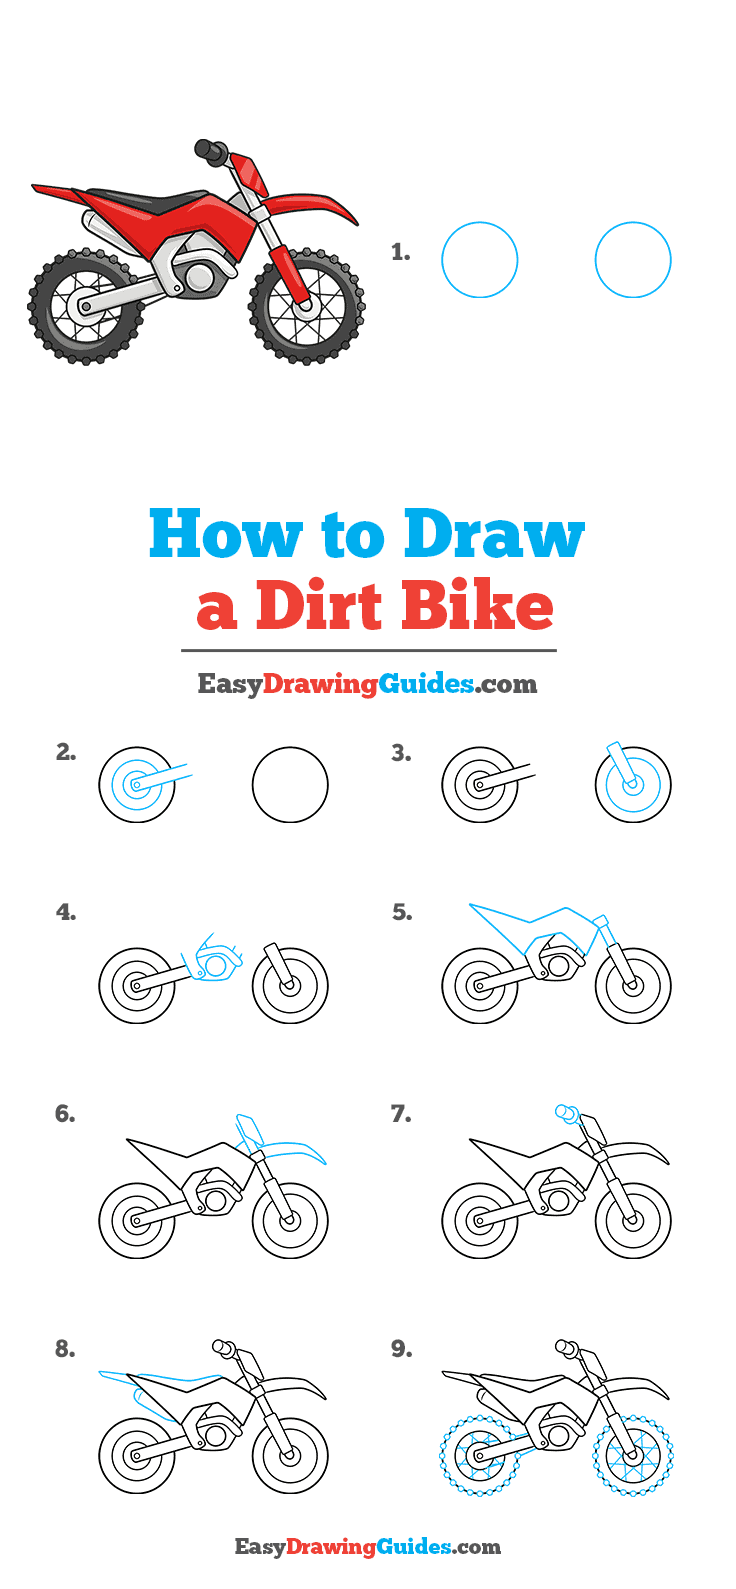 How to Draw a Dirt Bike Step by Step Tutorial Image